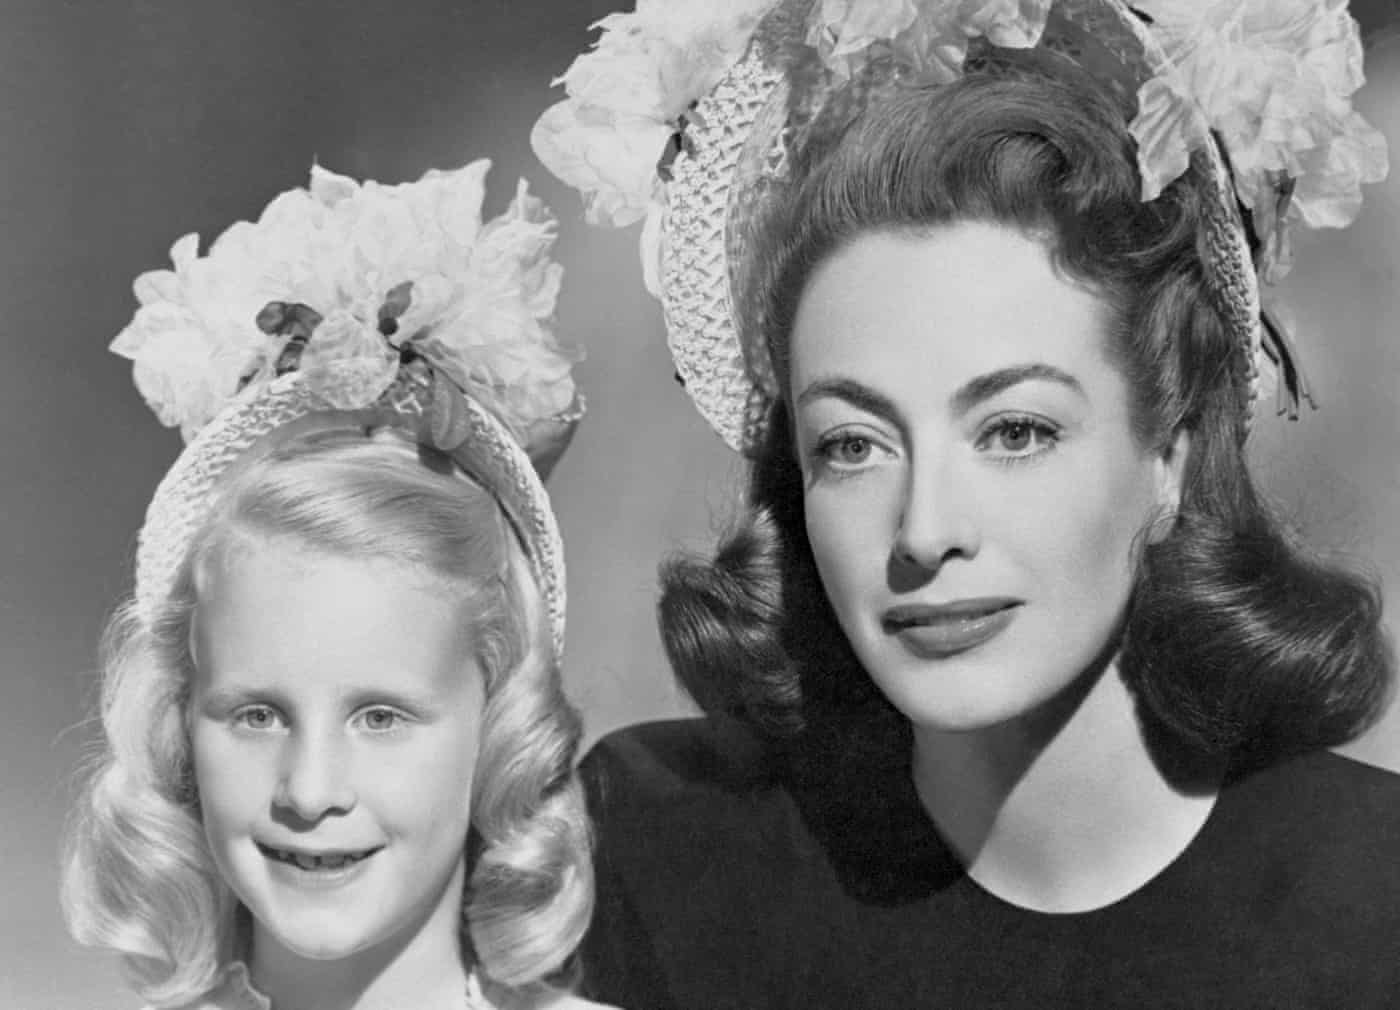 Christina Crawford on life after Mommie Dearest: 'My mother should have been in jail'